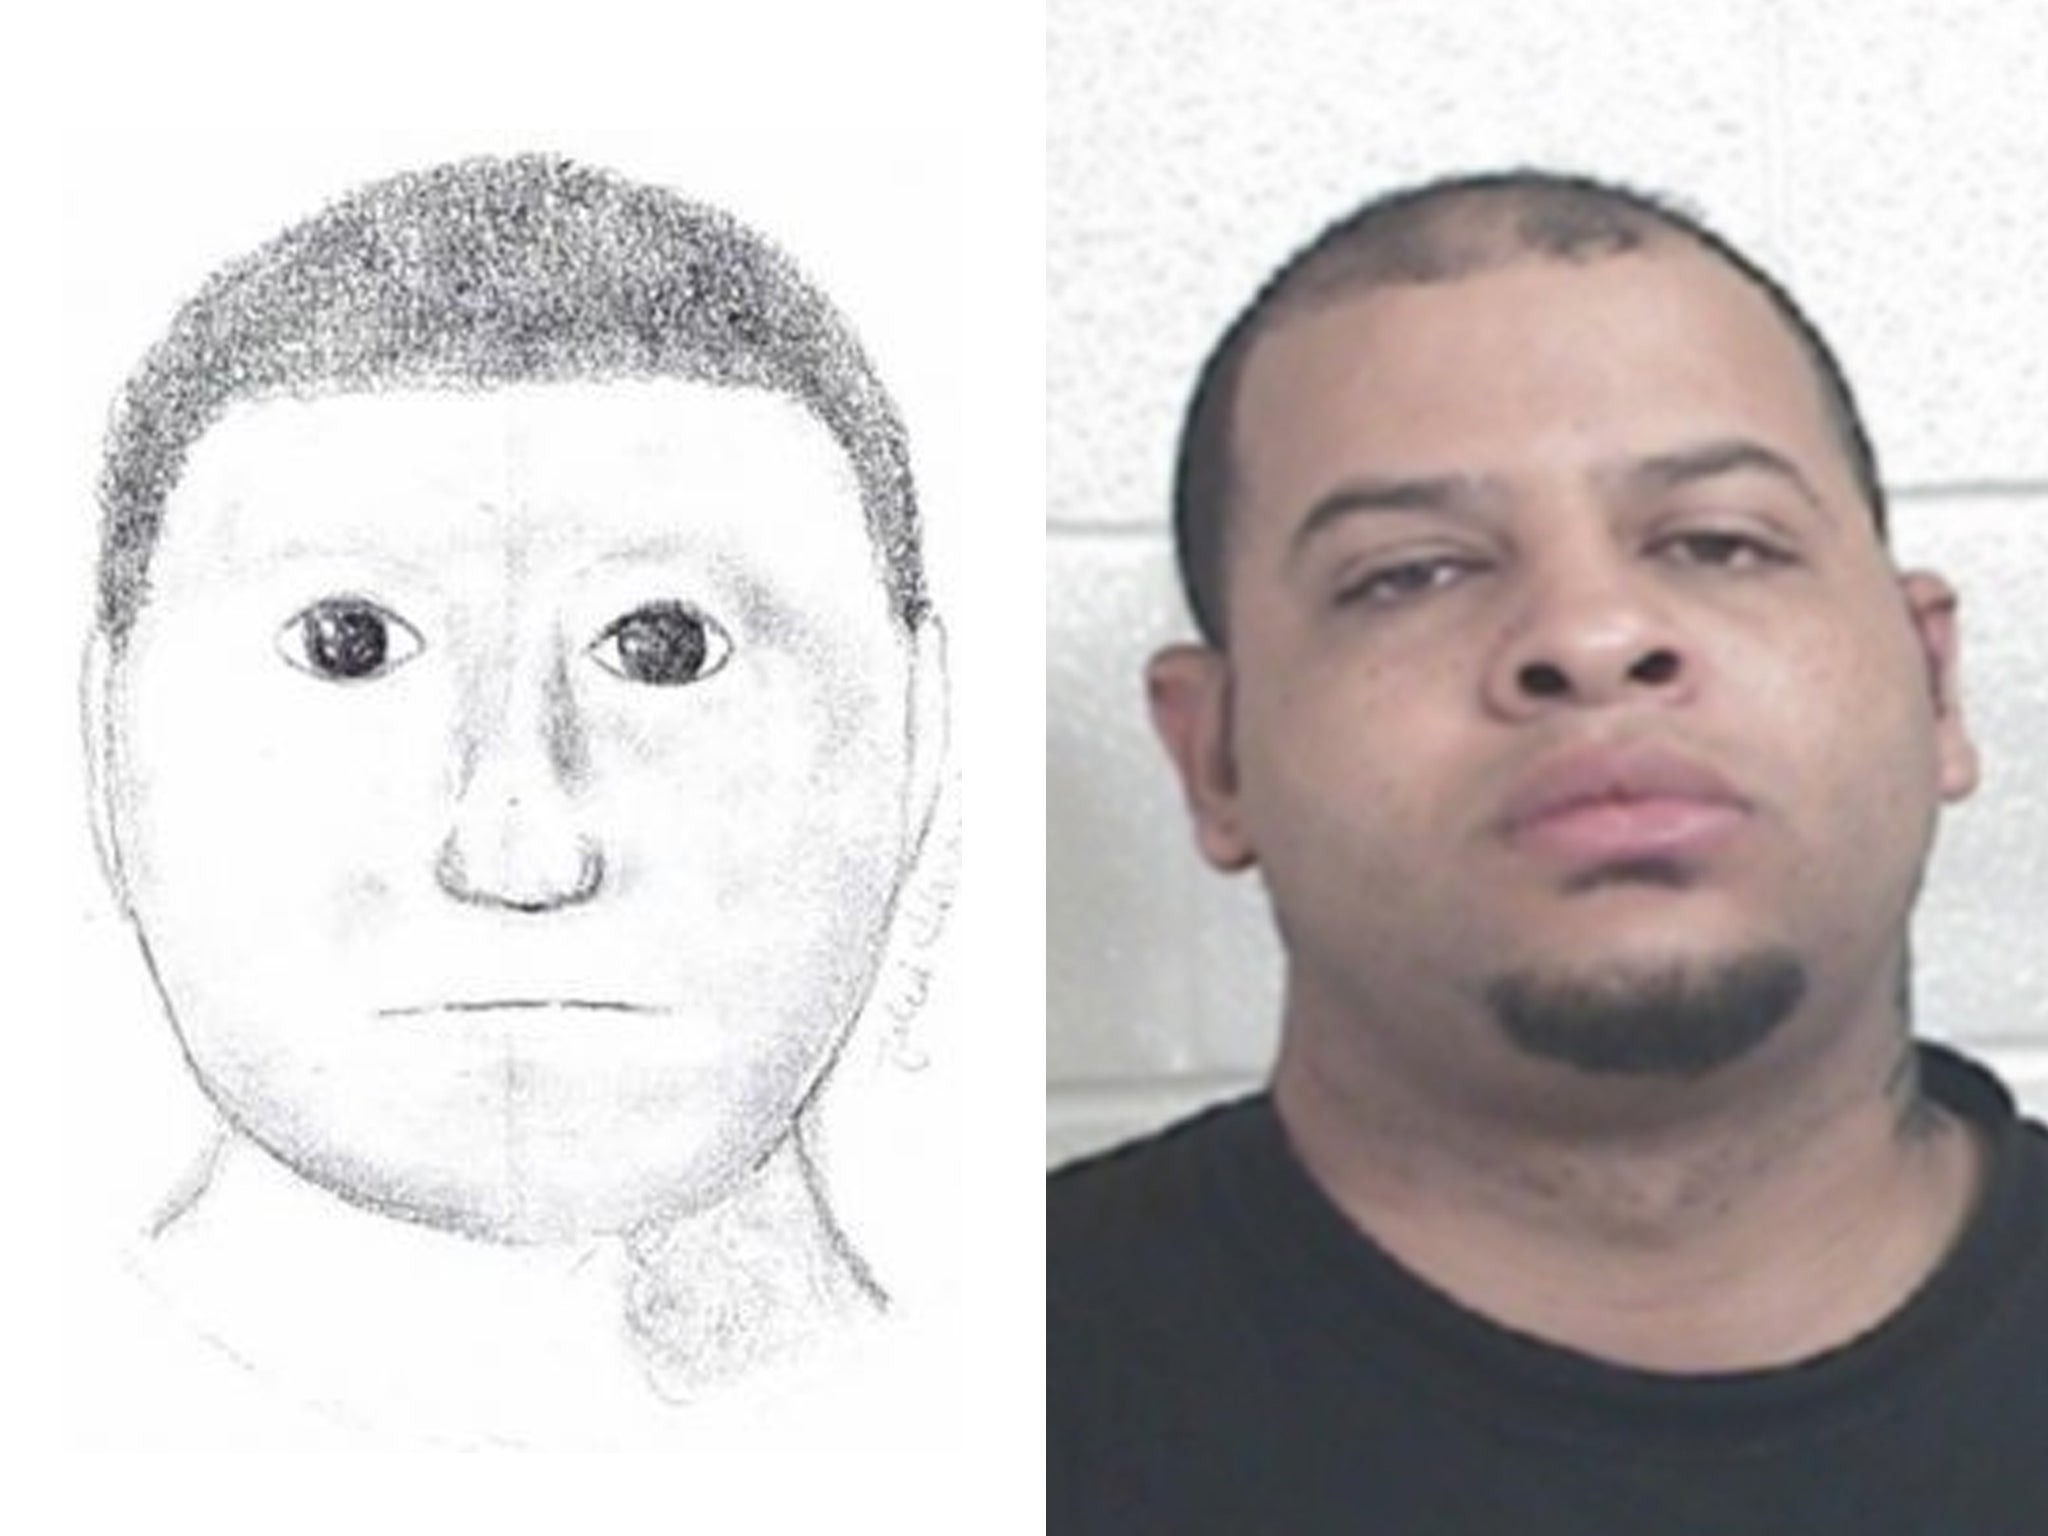 U0026#39;Worst Police Sketch Everu0026#39; Incredibly Leads To Arrest Of Armed Robbery Suspect | The Independent